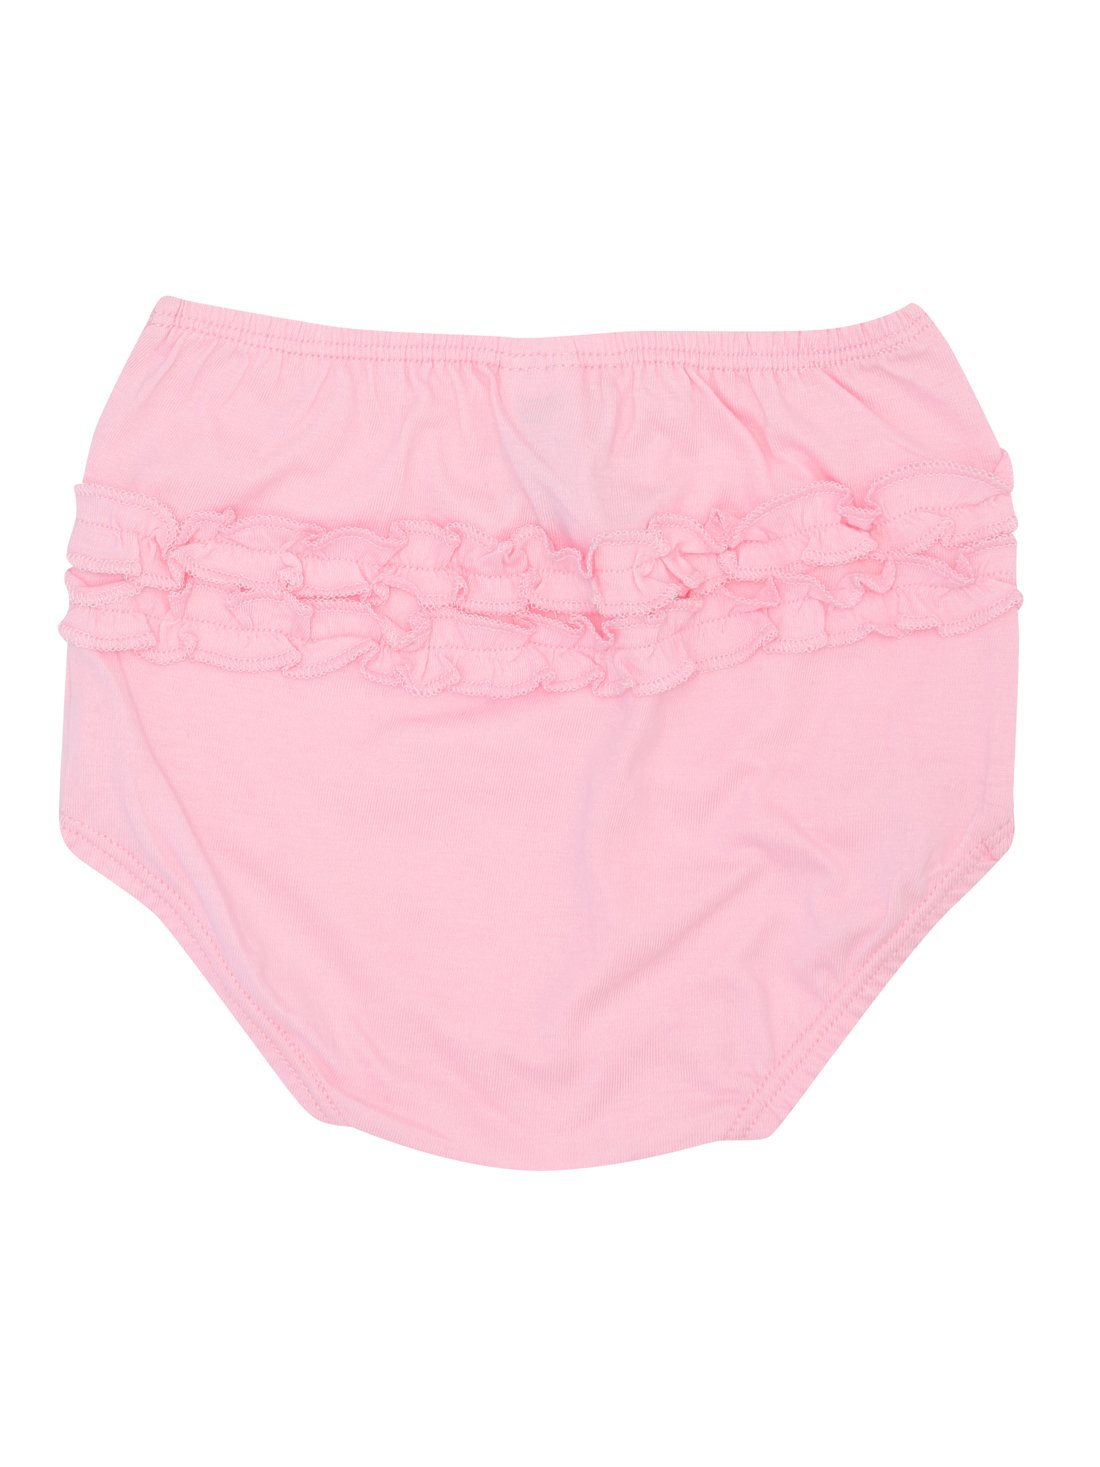 M& Co Baby Girl 100% Cotton Frilly Knickers Nappy Cover - Multipack 2 Pack